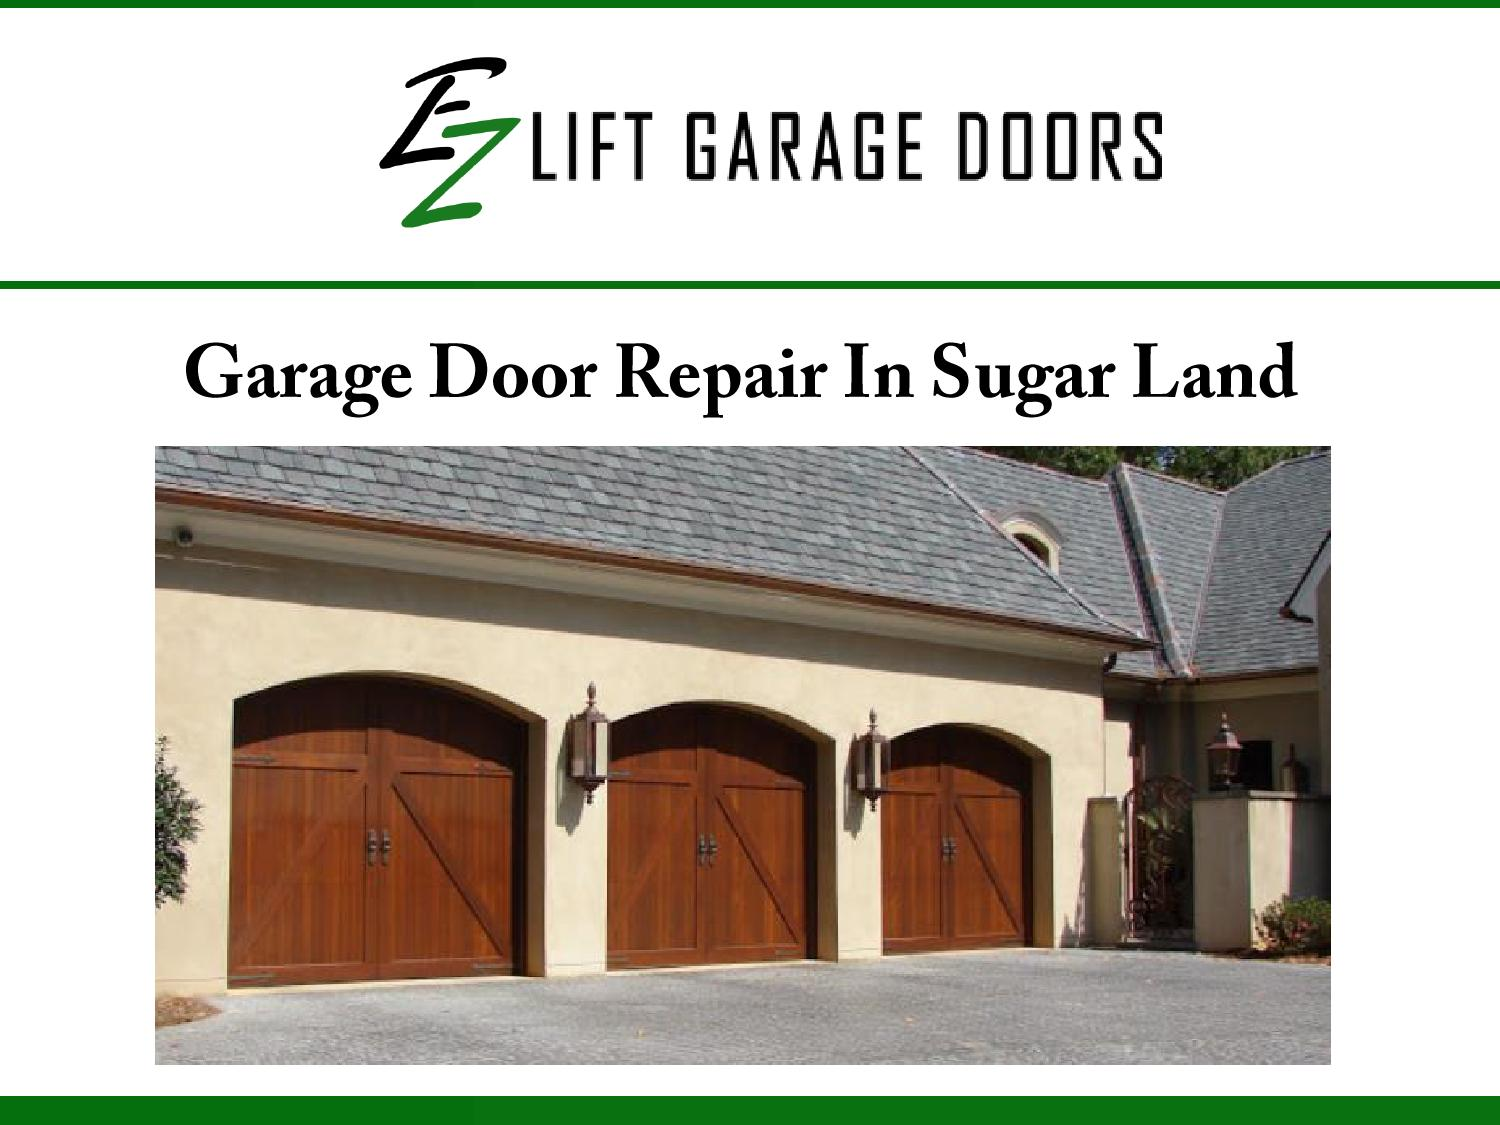 Garage Door Repair In Sugar Land Tx By Ezohd Issuu